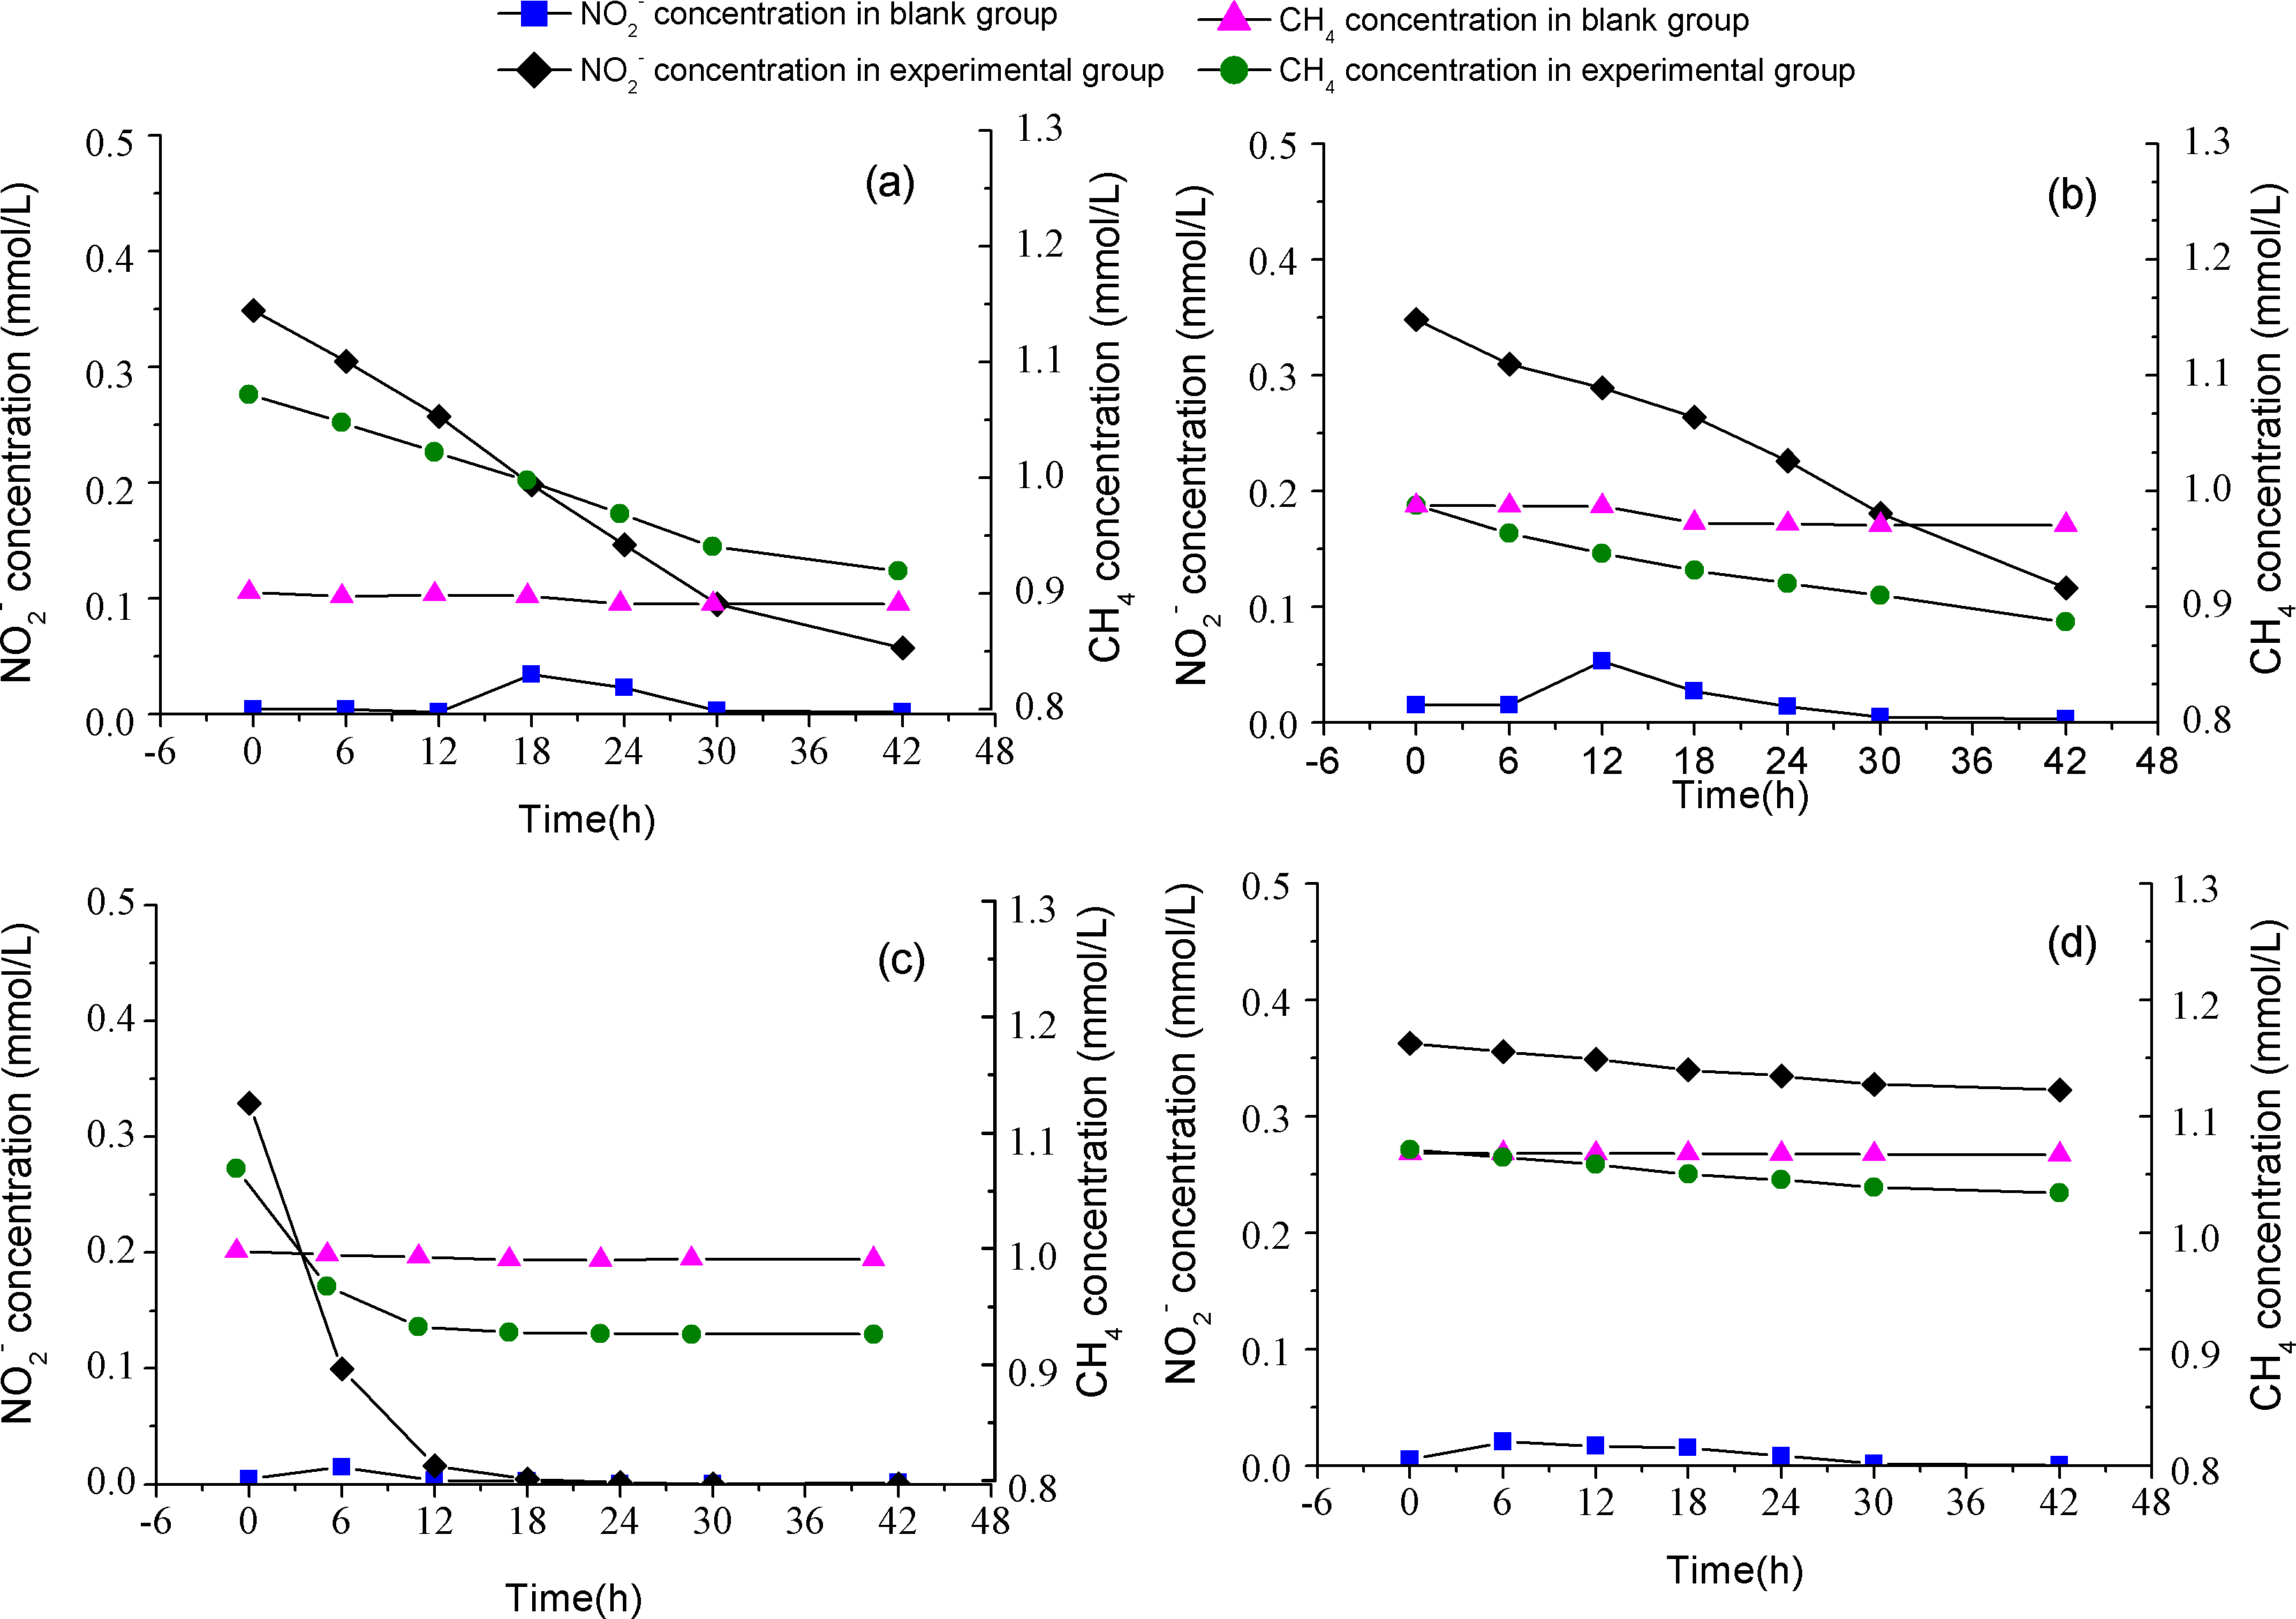 Distribution and characteristic of nitrite-dependent